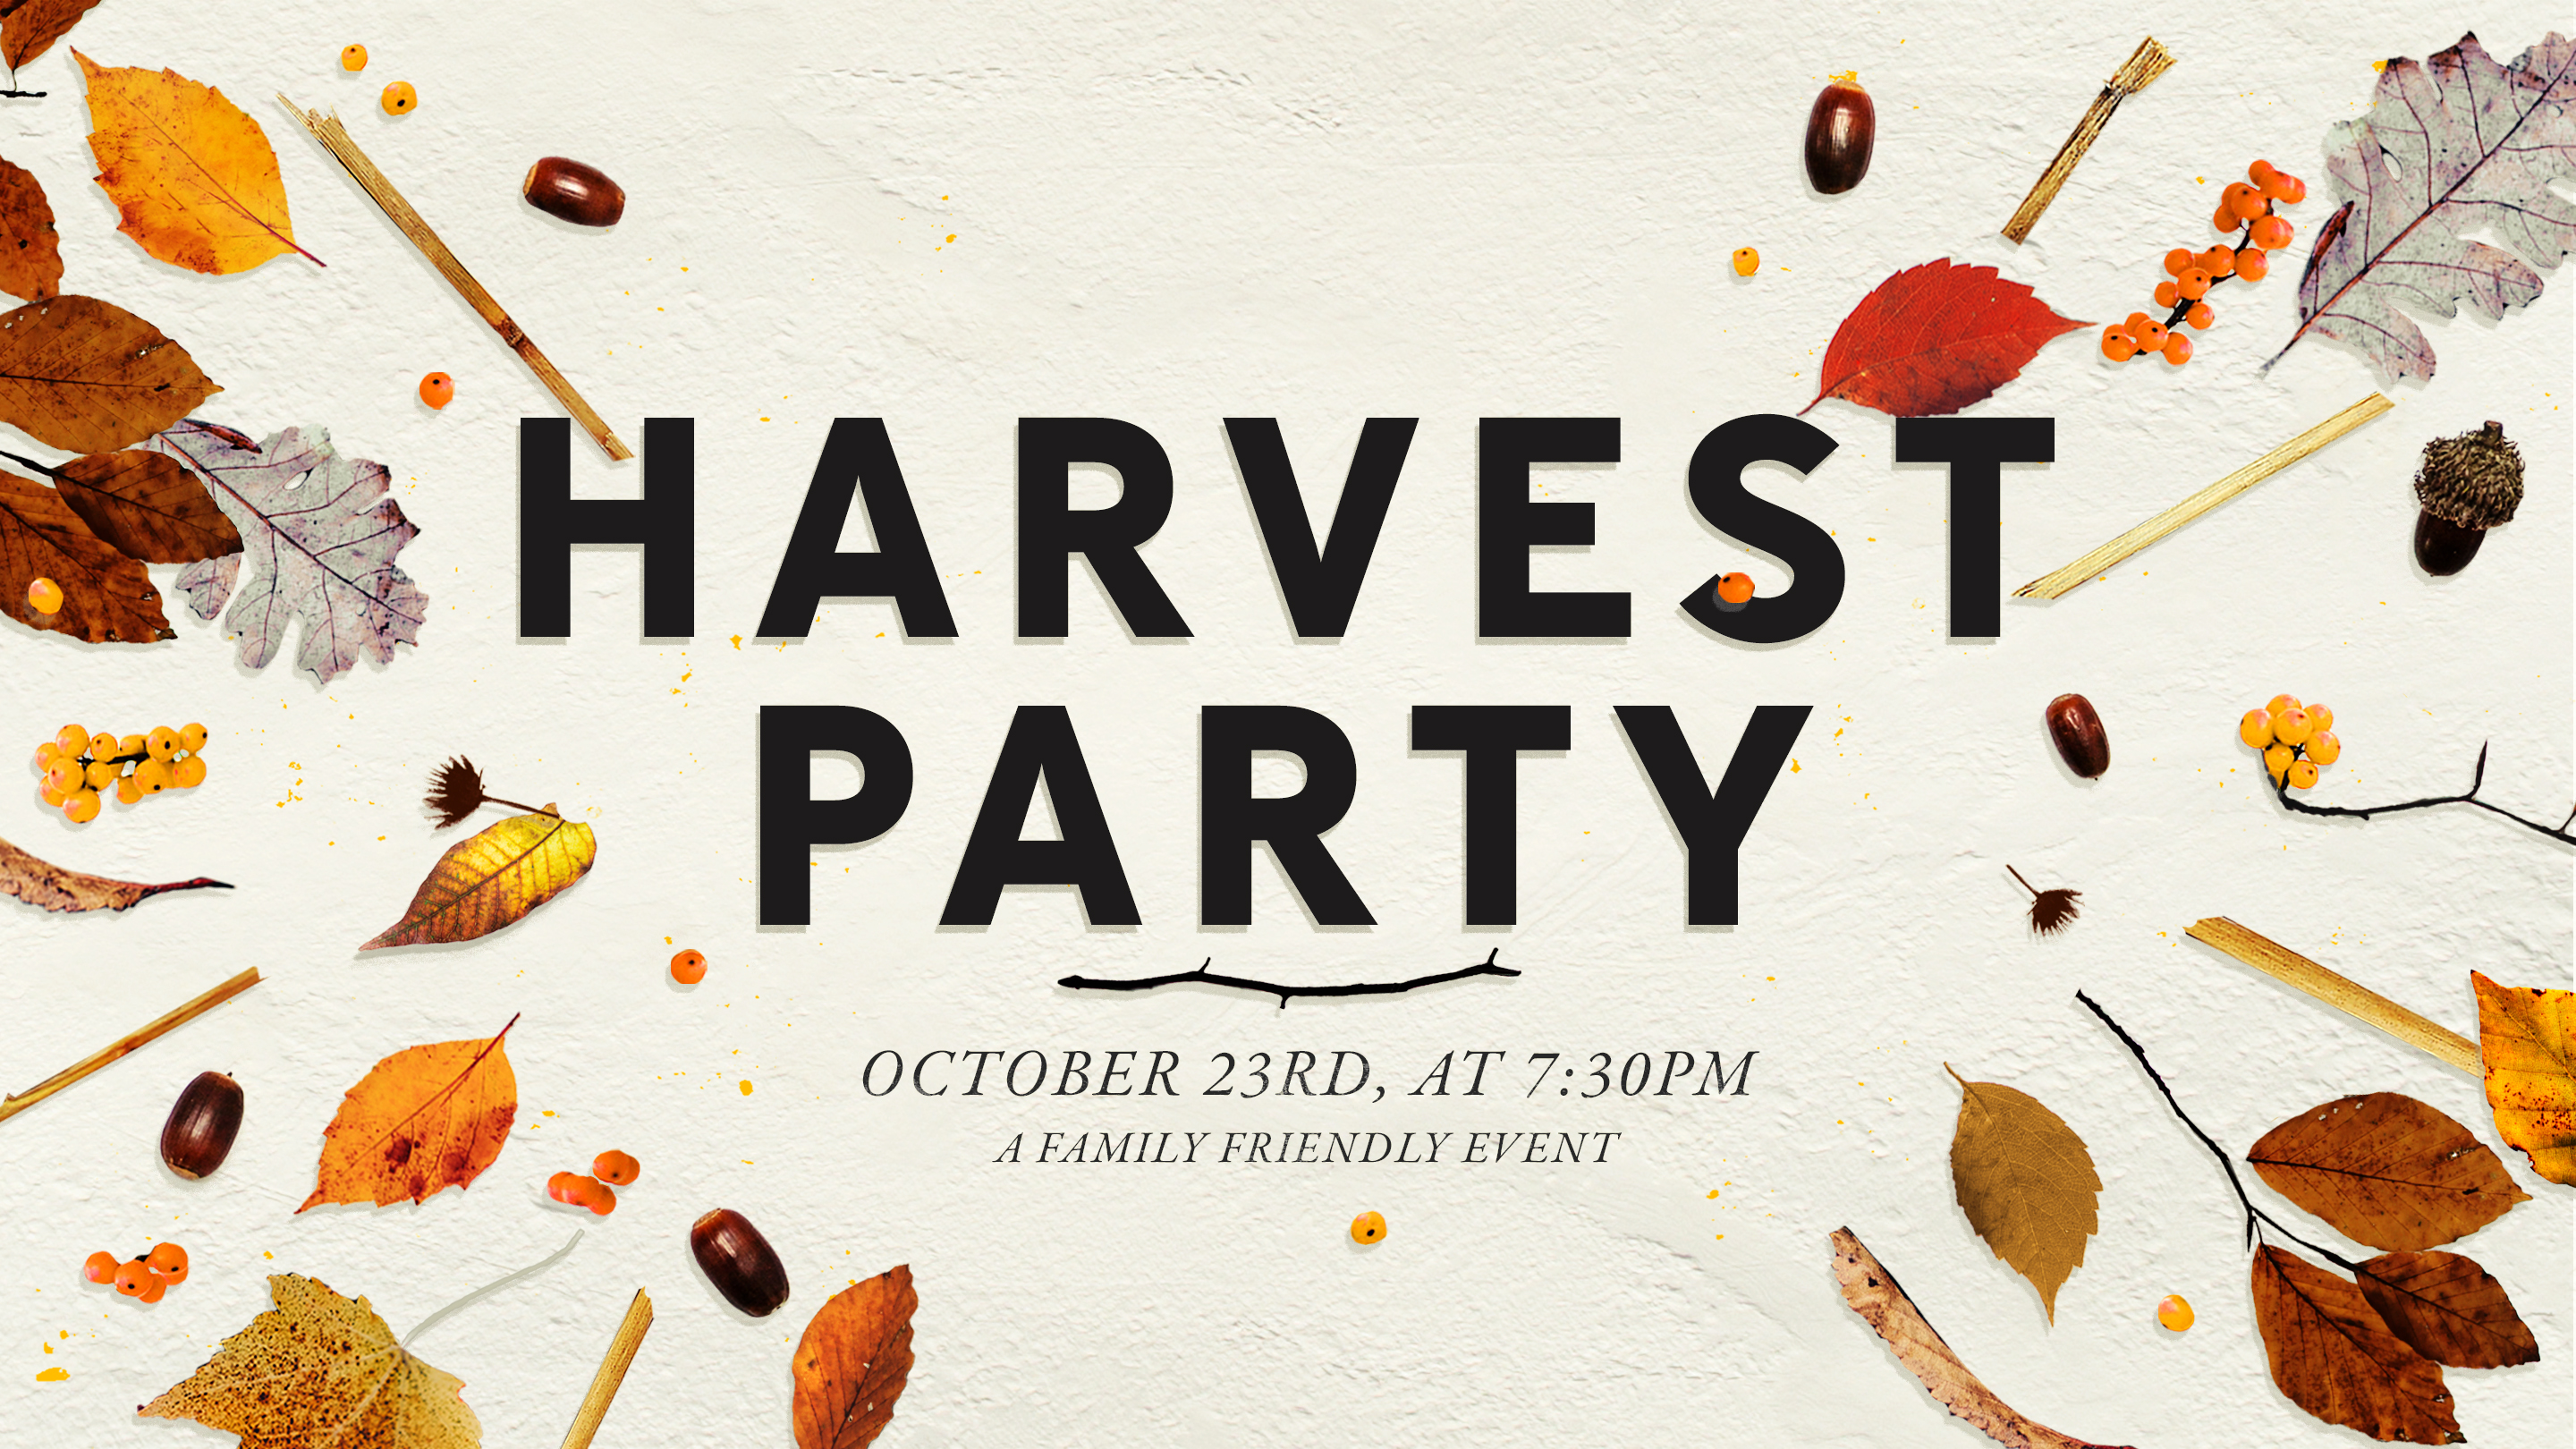 Harvest Party image